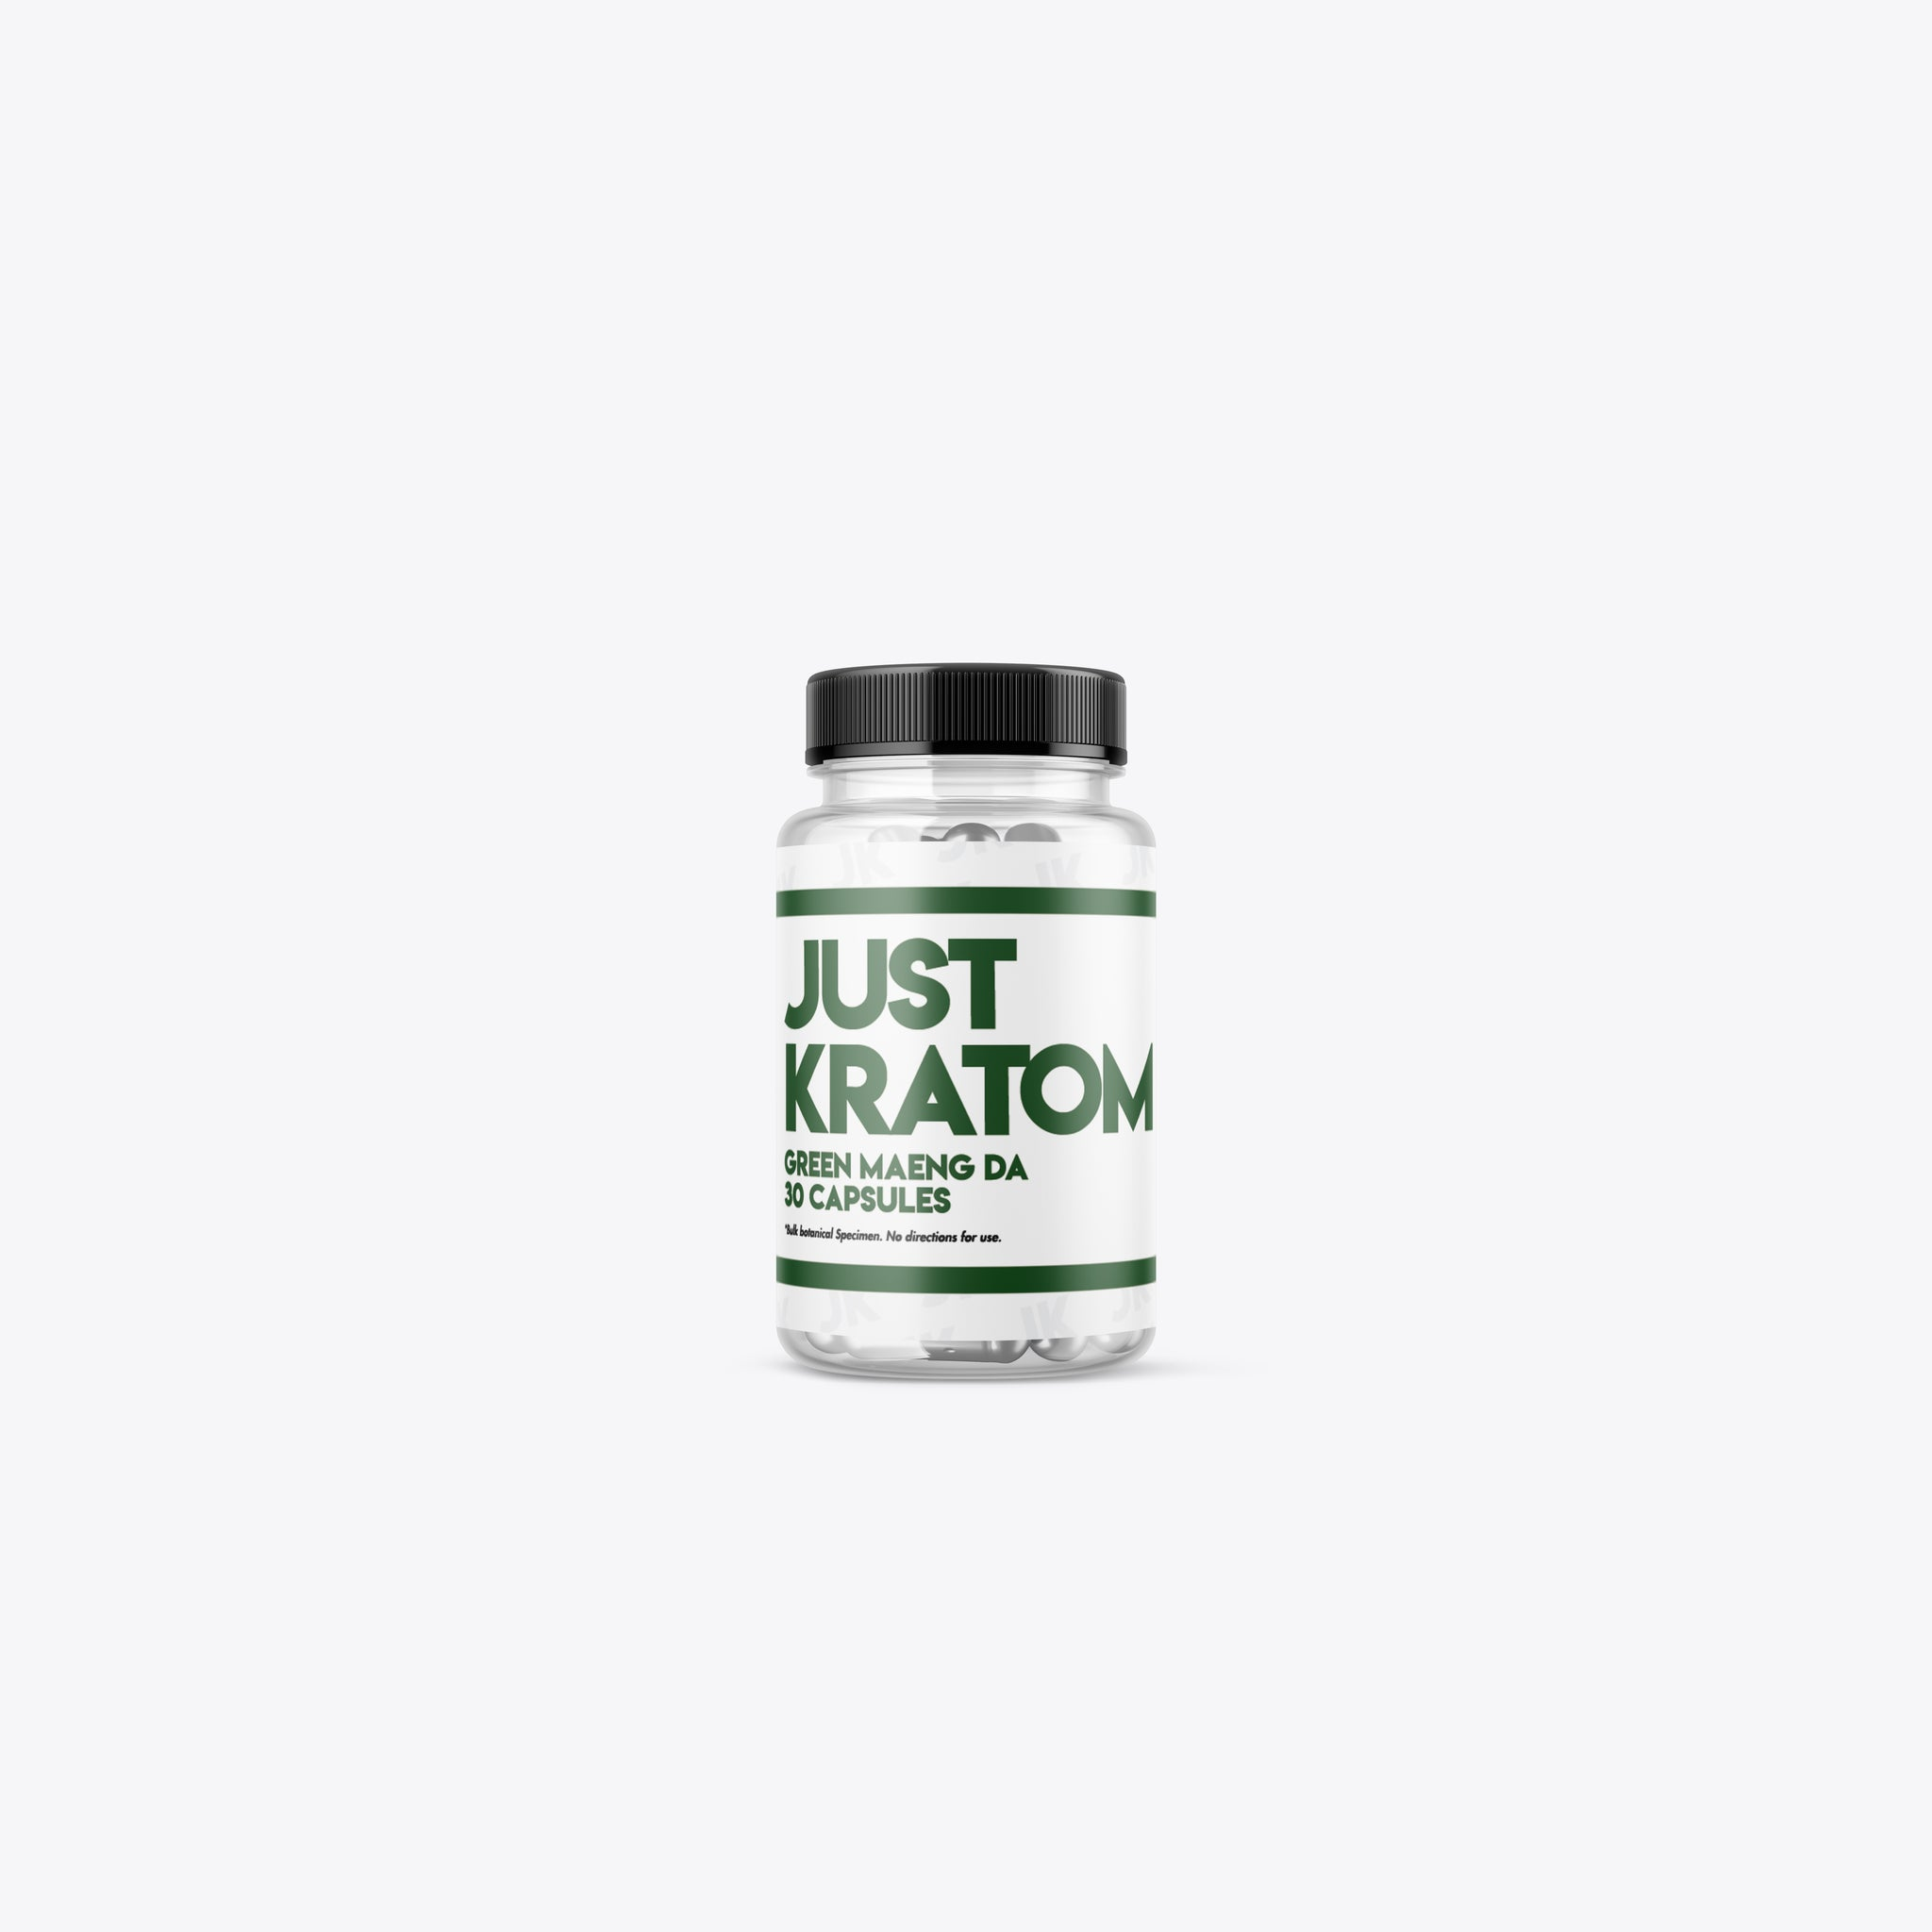 Just Kratom - Green Maeng Da Capsules (Multiple Sizes)